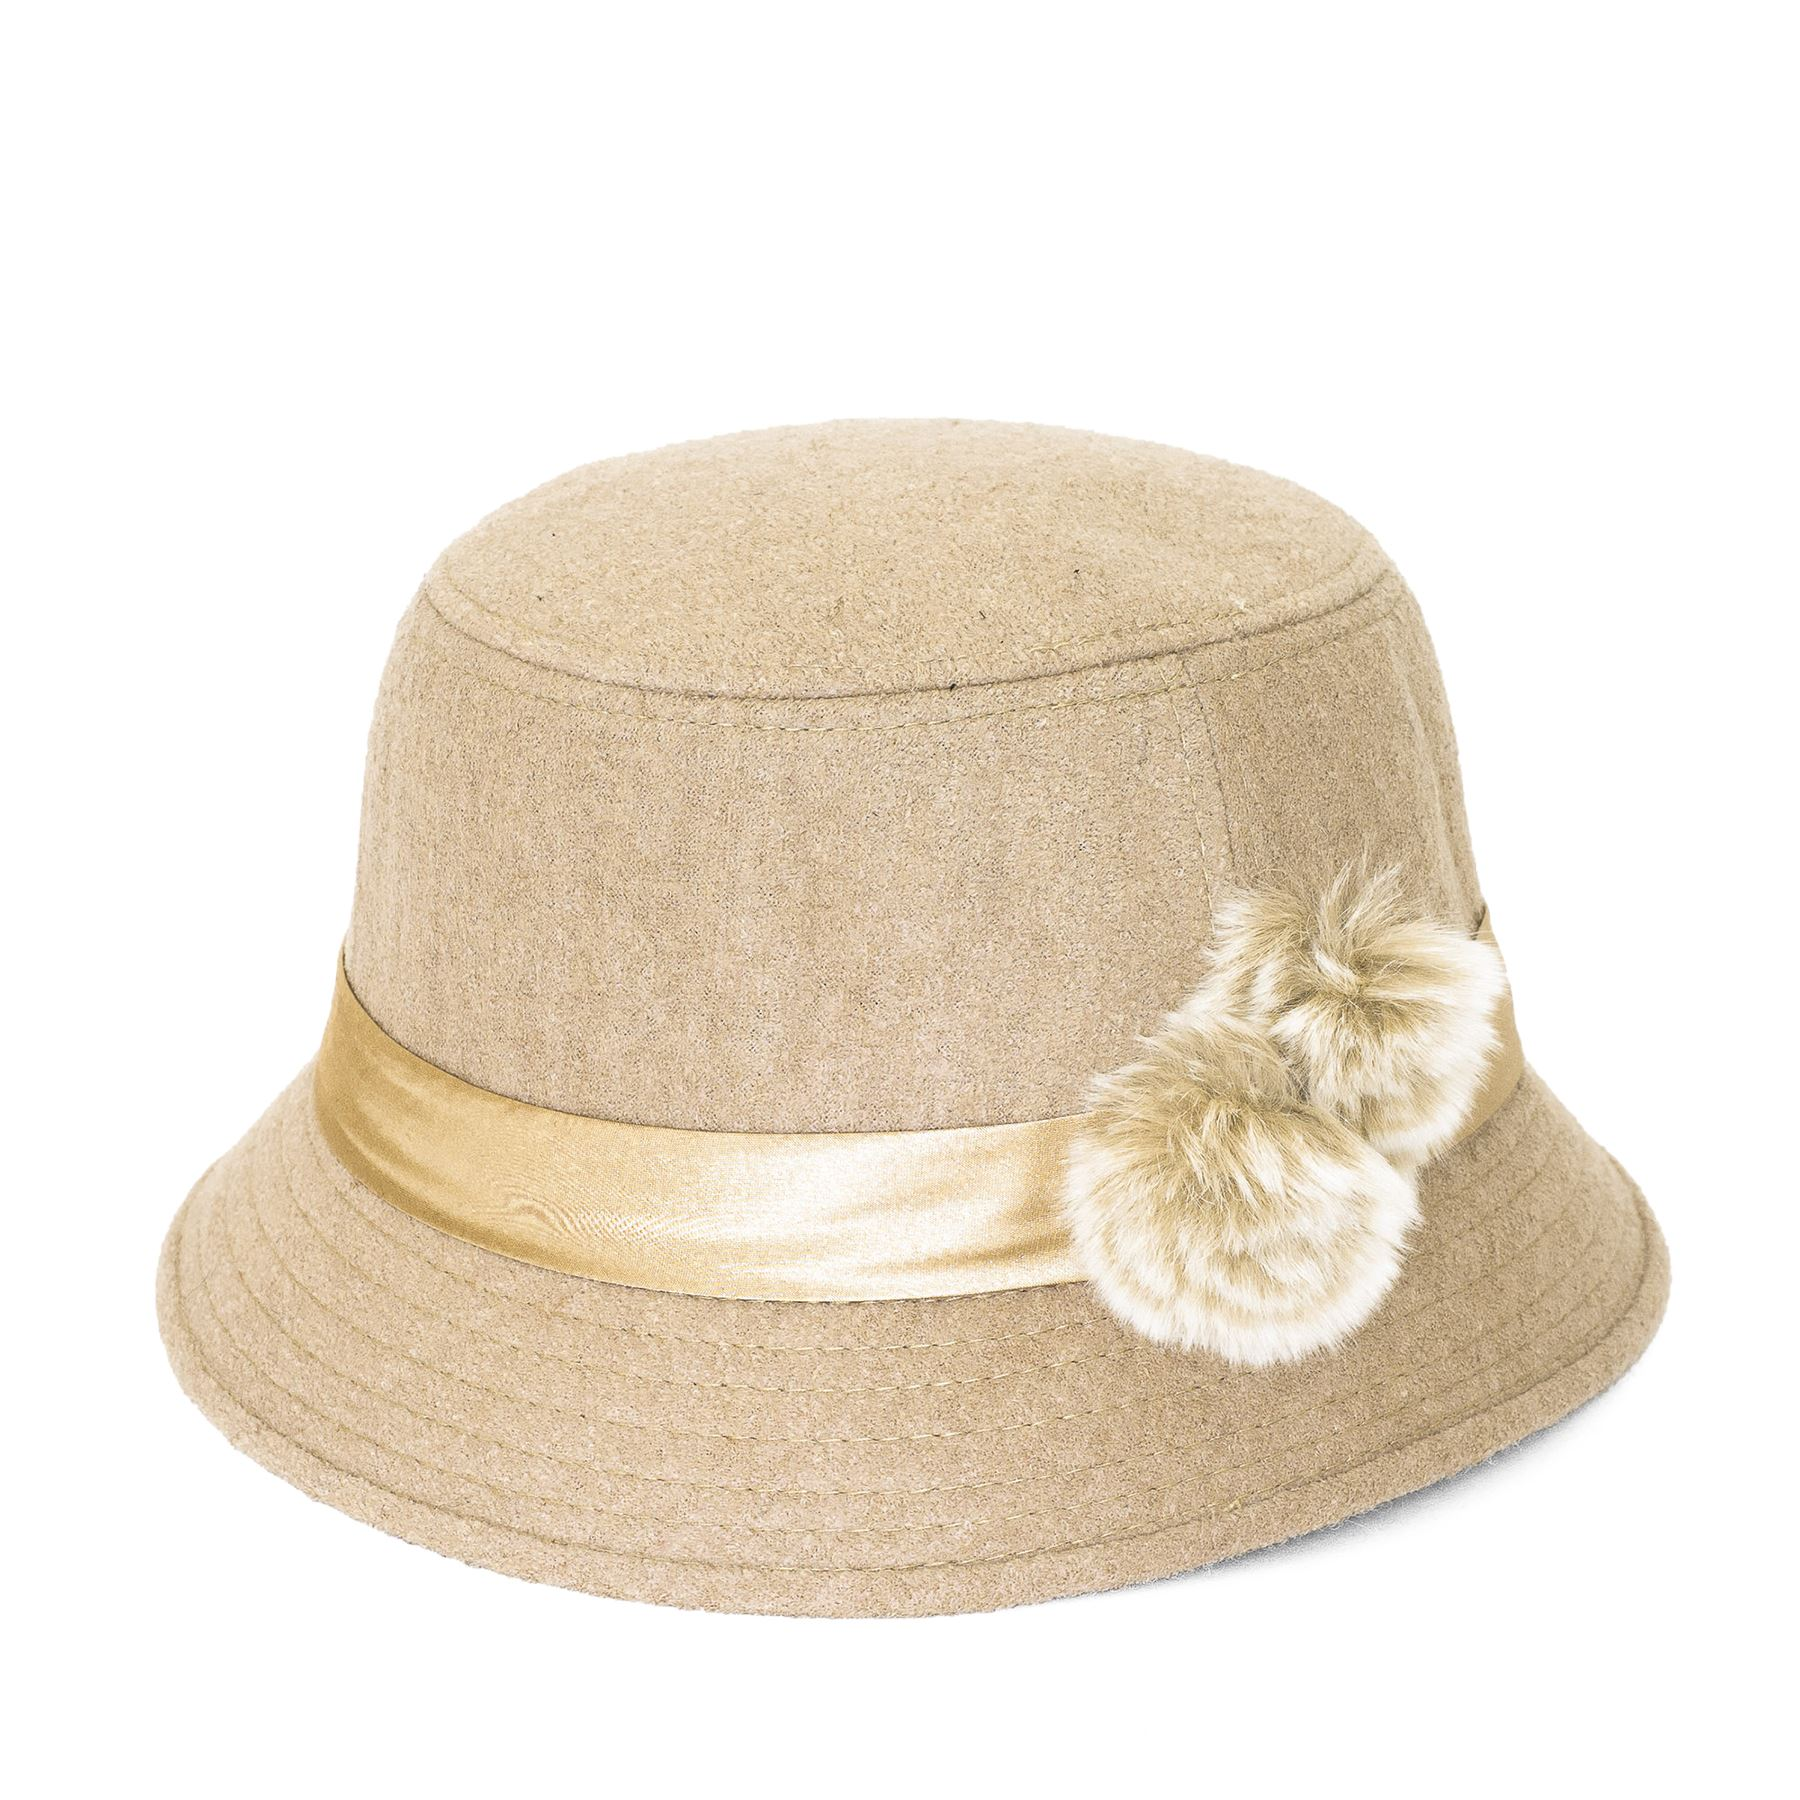 e2602225a02 Plain Band with Fur Flower Cloche-Bucket Hat  Picture 2 of 5 ...